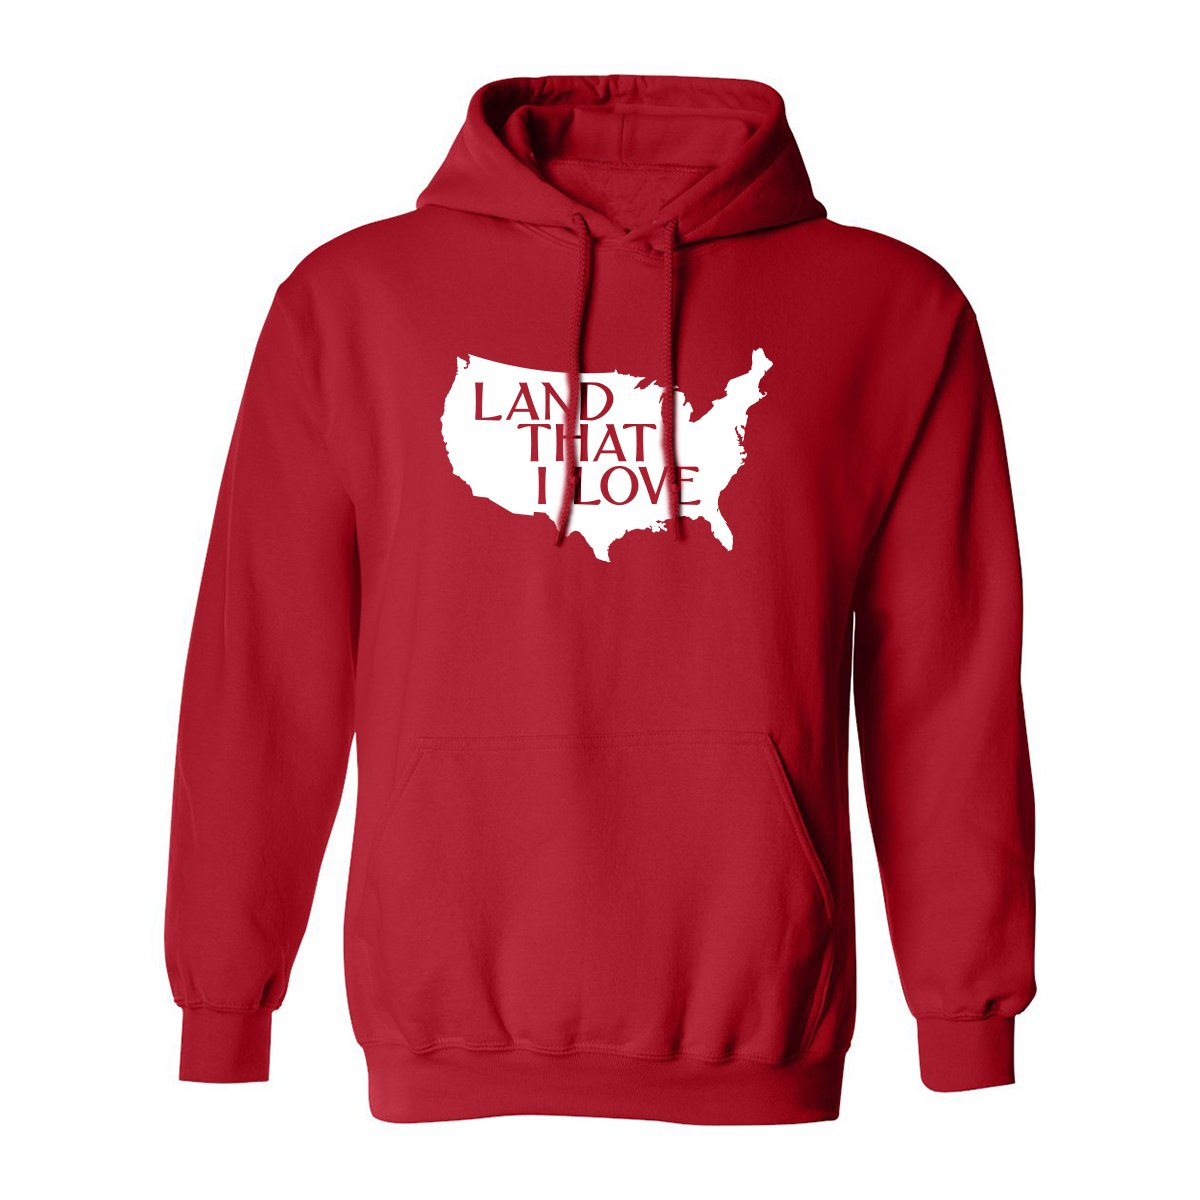 Land That I Love Adult Hooded Sweatshirt in Red - XXXX-Large